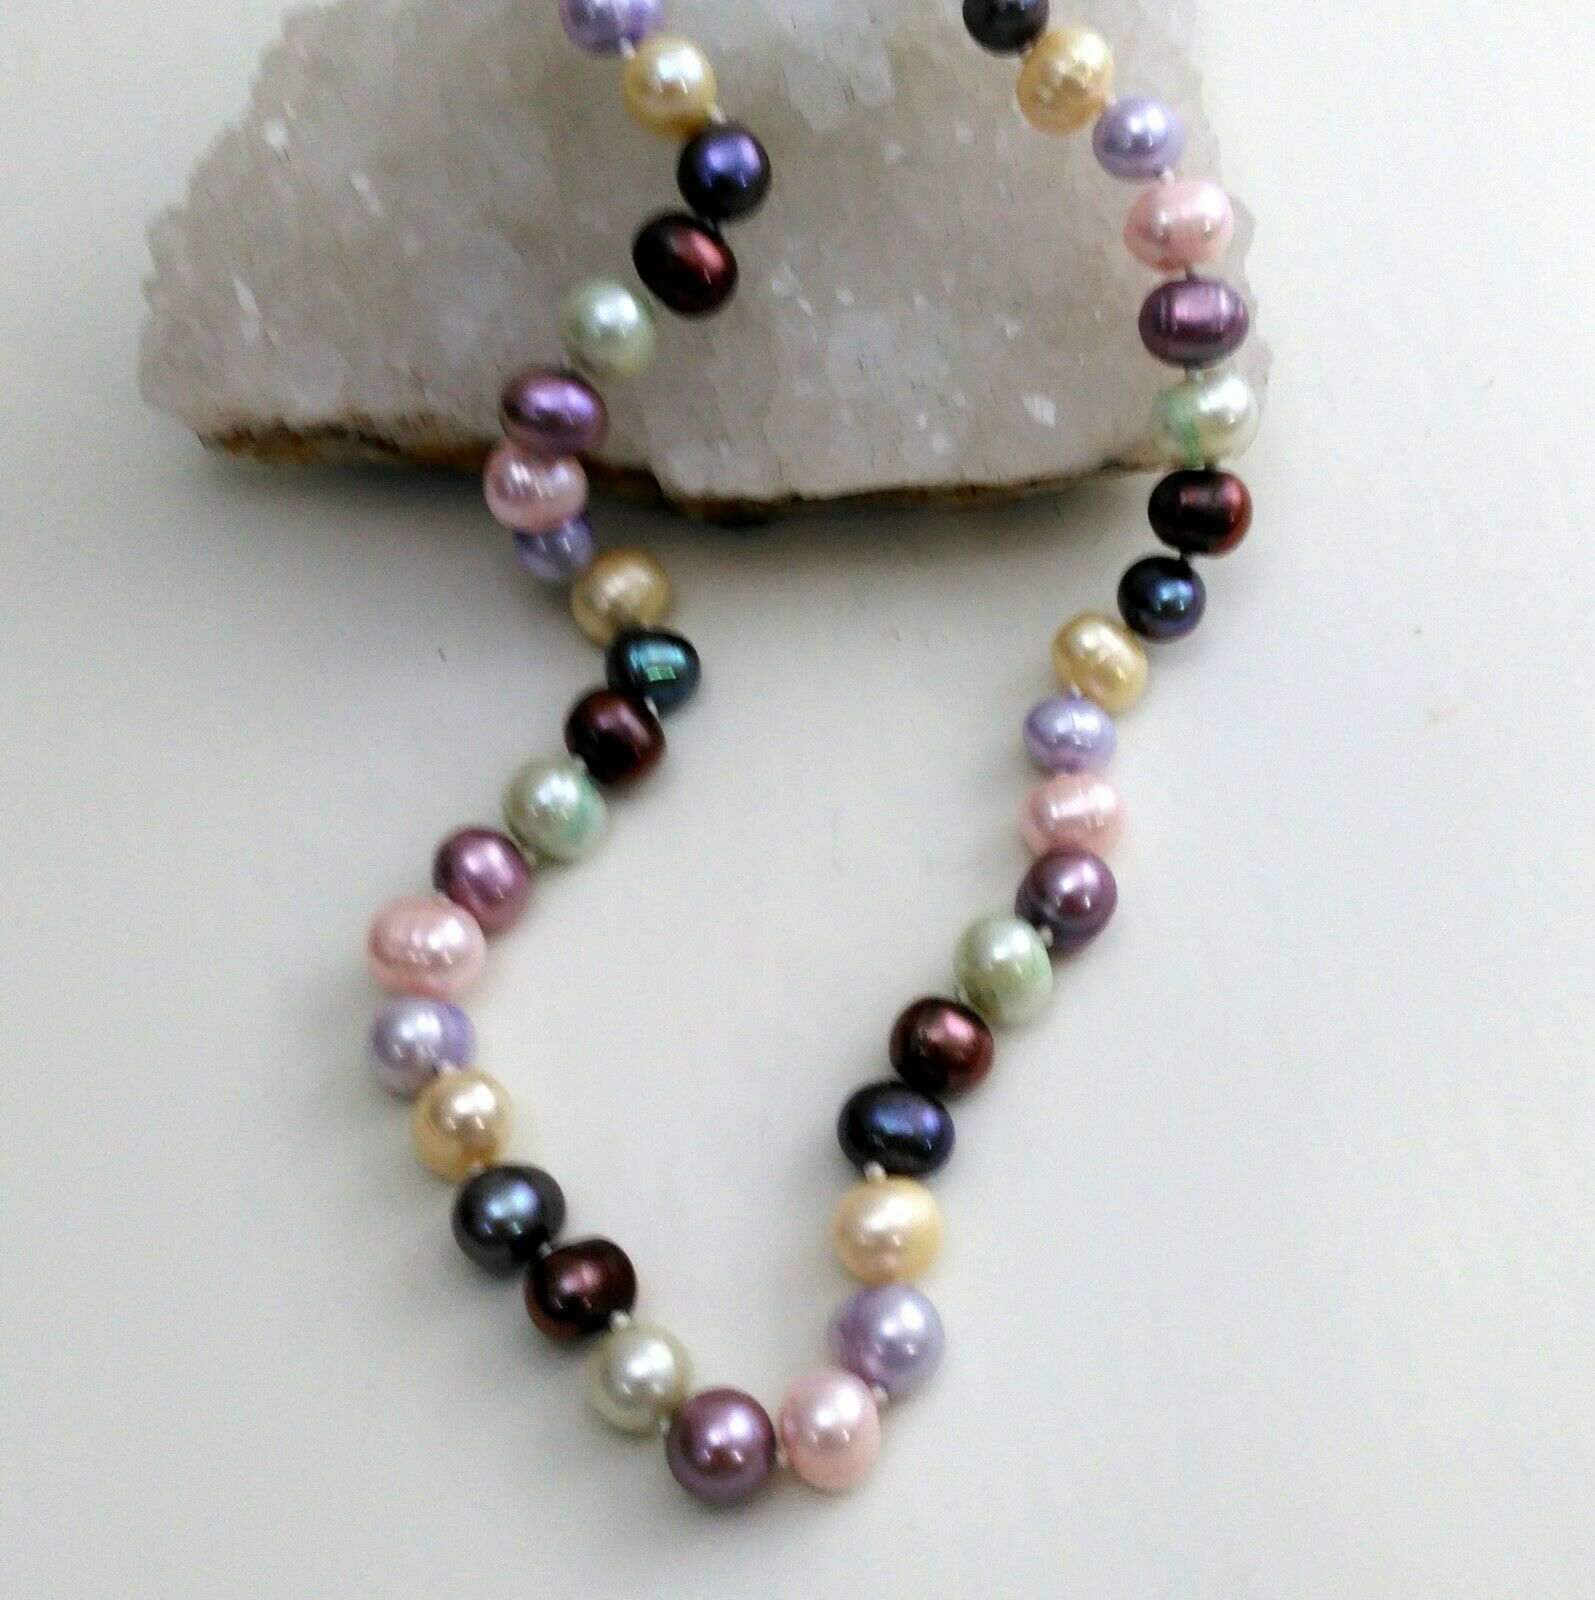 Primary image for Palm Beach Pearl Necklace Hand Knotted, Multi-Colored 10-12 mm pearls, New 18""